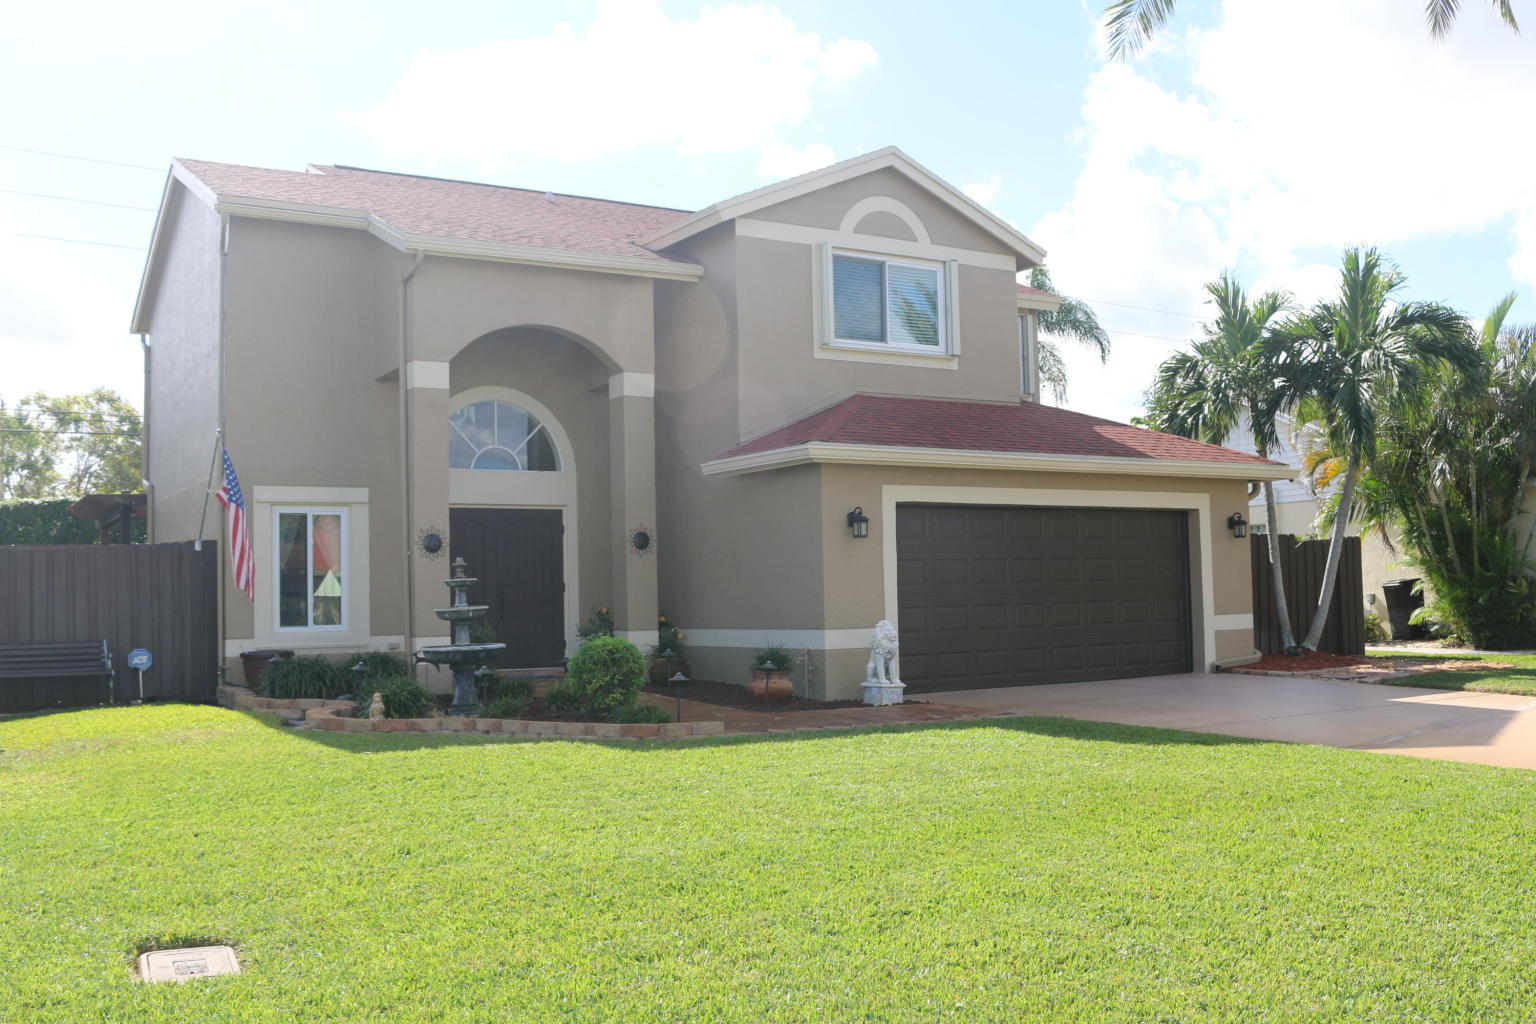 Alden ridge homes for sale boynton beach real estate for Alden homes